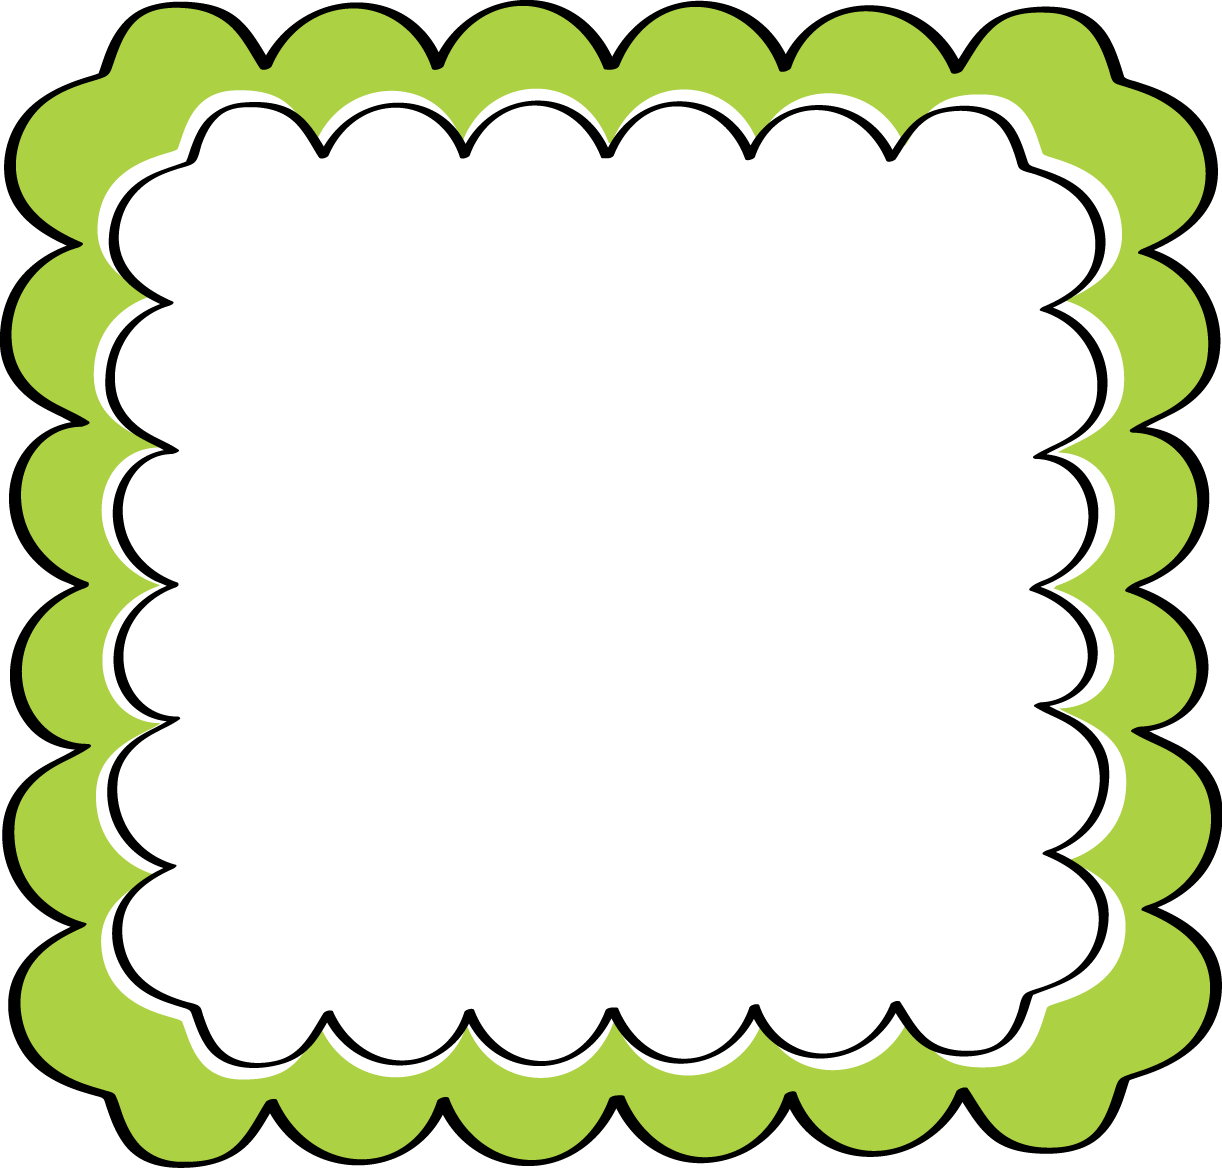 school theme border clipart green scalloped frame free clip art frames